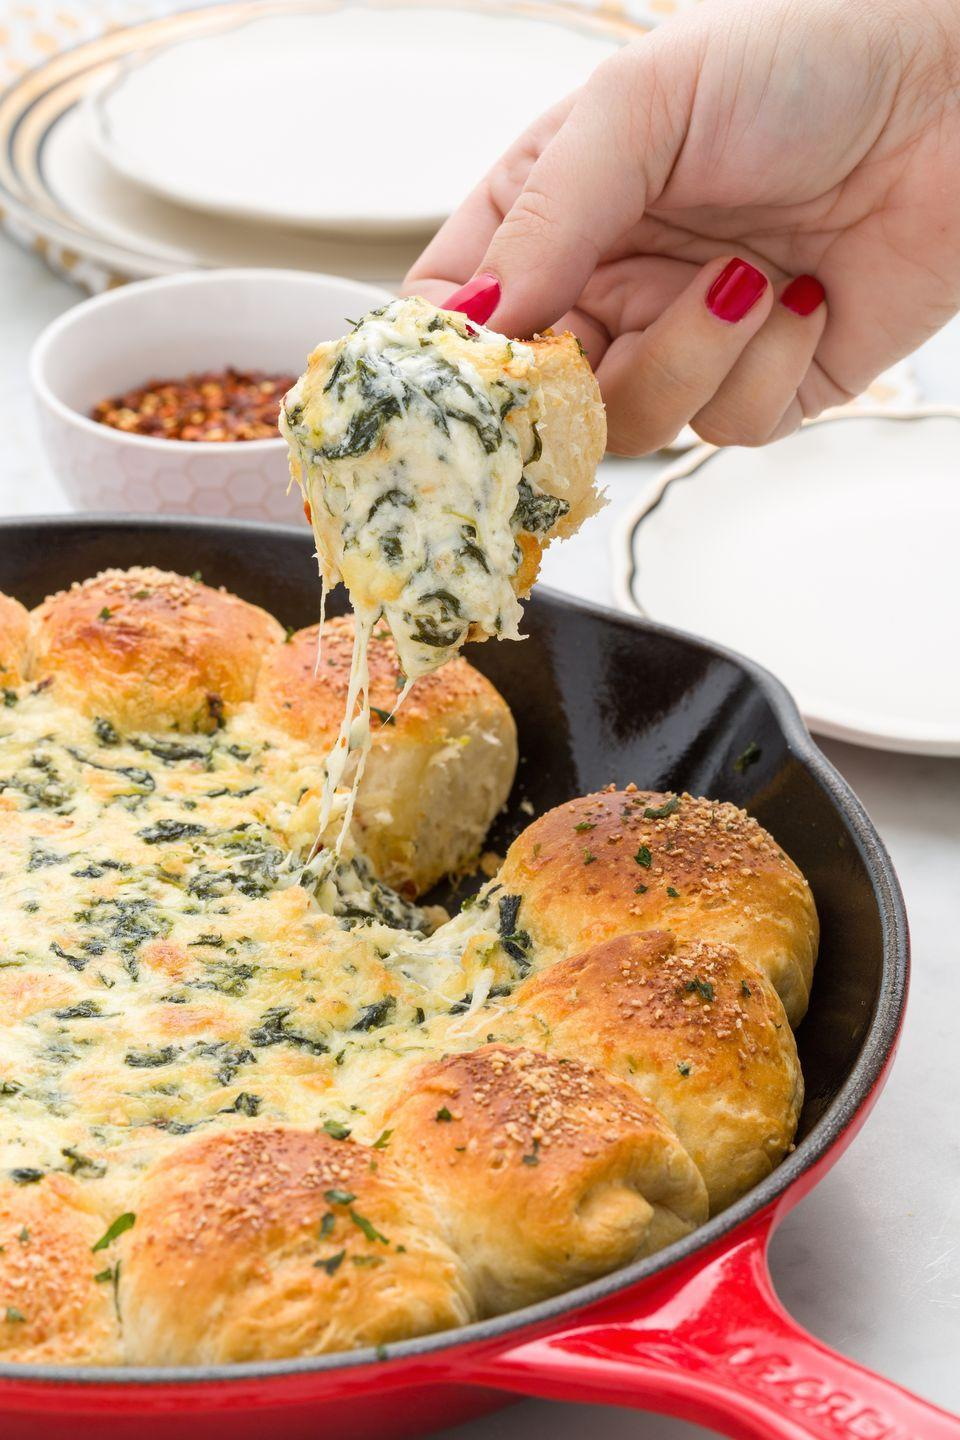 "<p>Everyone will be going in for seconds.</p><p>Get the recipe from <a href=""https://www.delish.com/cooking/recipe-ideas/recipes/a45181/baked-biscuit-wreath-dip-recipe/"" rel=""nofollow noopener"" target=""_blank"" data-ylk=""slk:Delish"" class=""link rapid-noclick-resp"">Delish</a>.</p>"